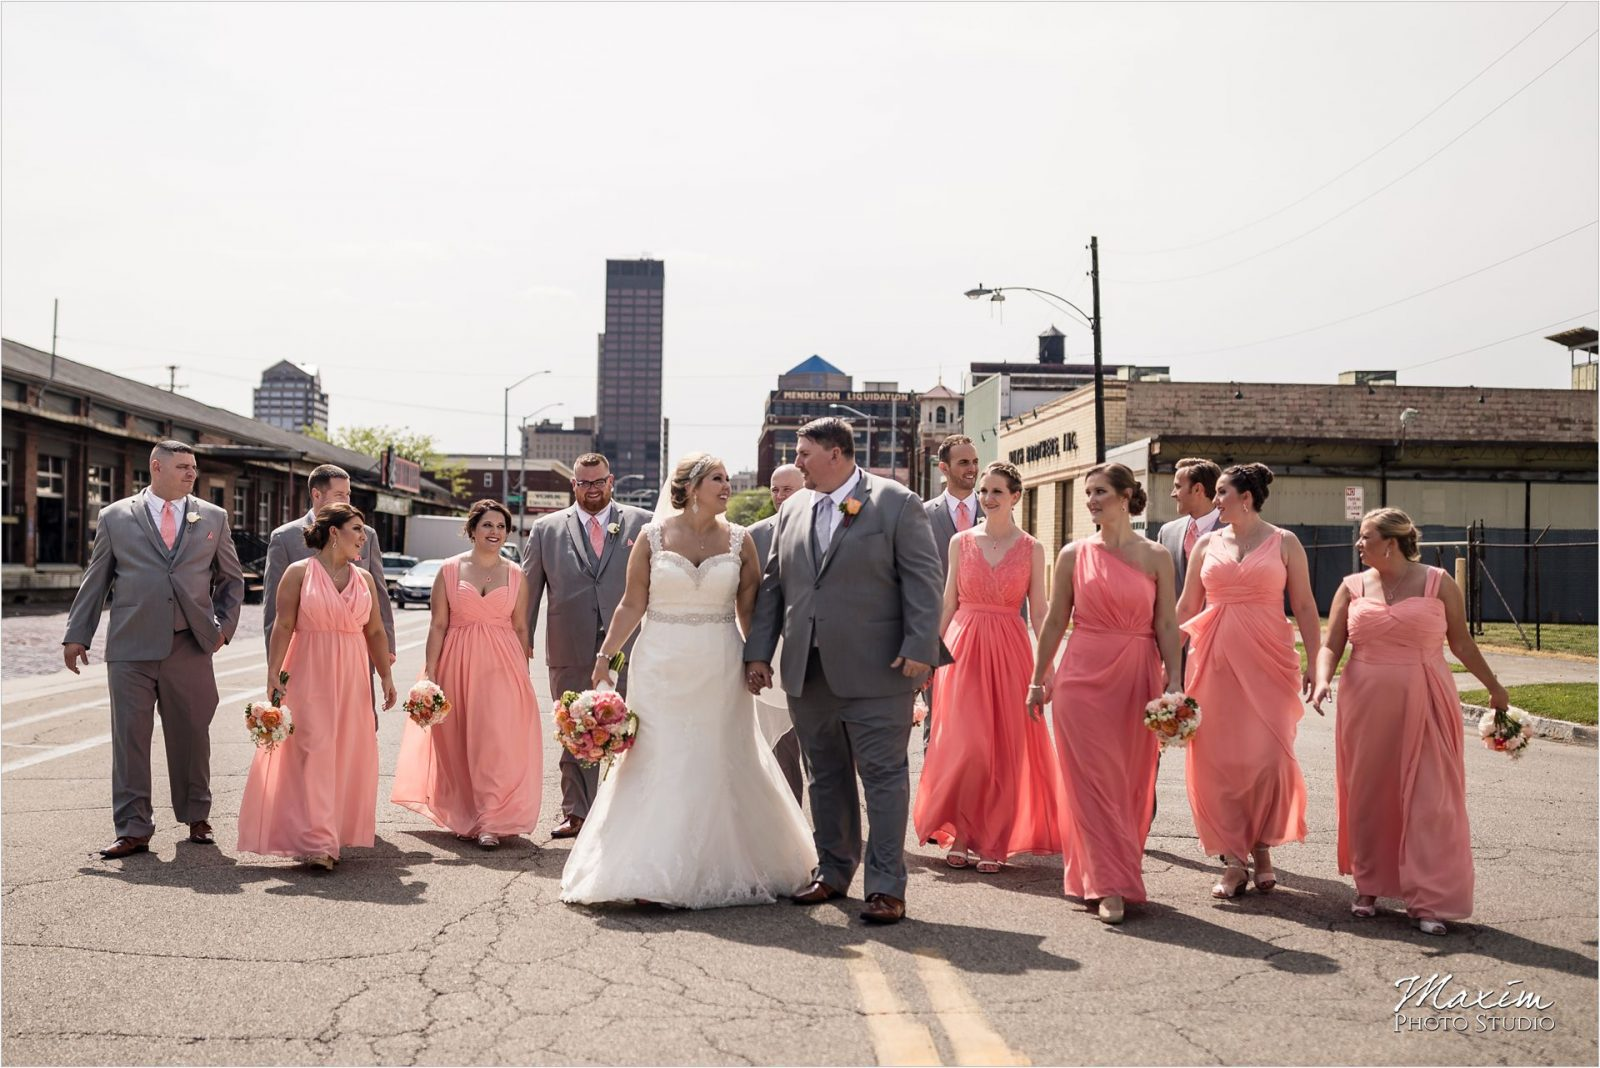 Top of the Market Dayton Ohio Wedding Downtown bridal party